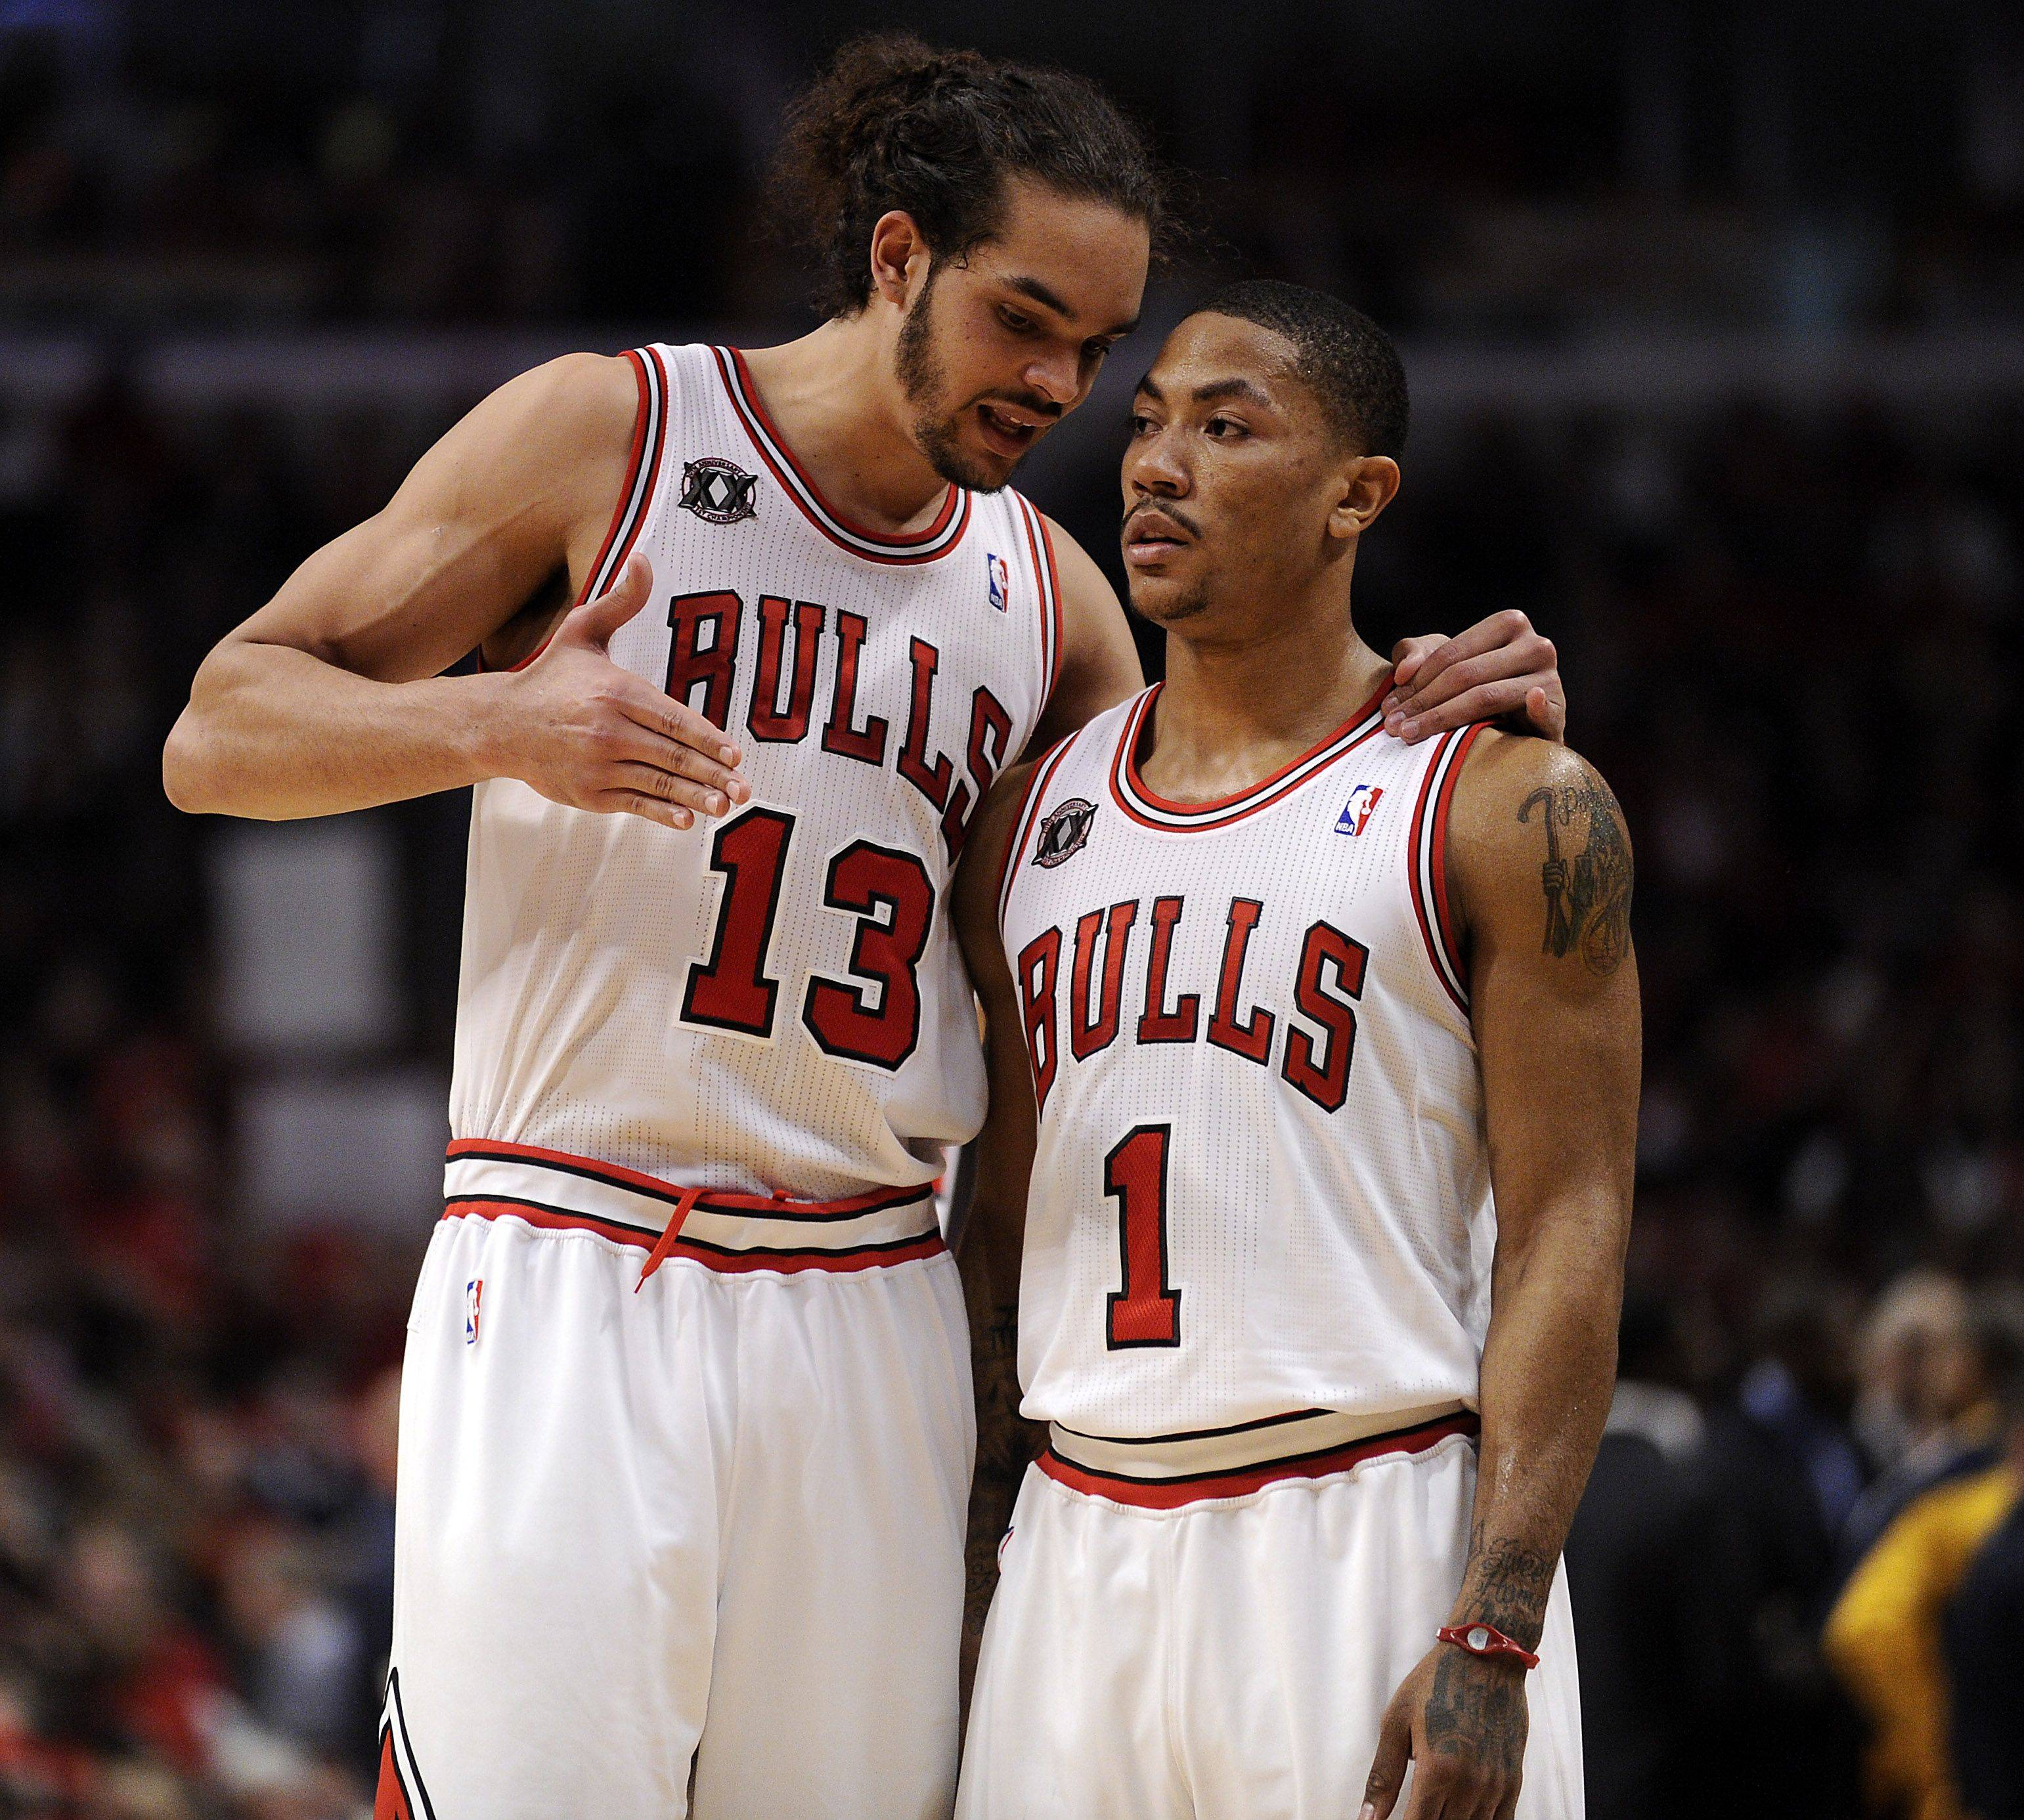 Derrick Rose and Joakim Noah talk over the game plan in the second half.